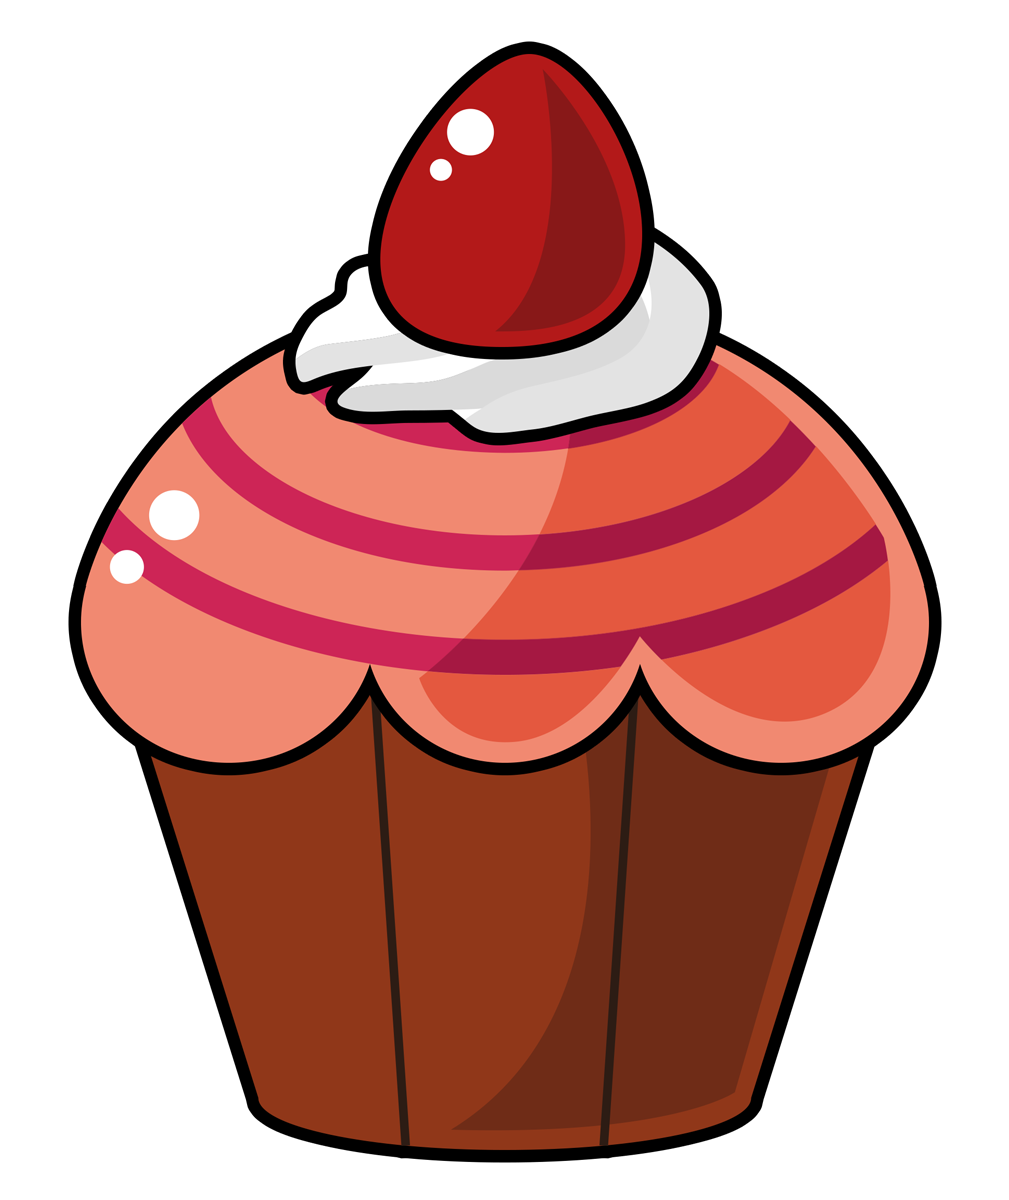 Cupcake free to use clip art 2 - Cliparting.com free